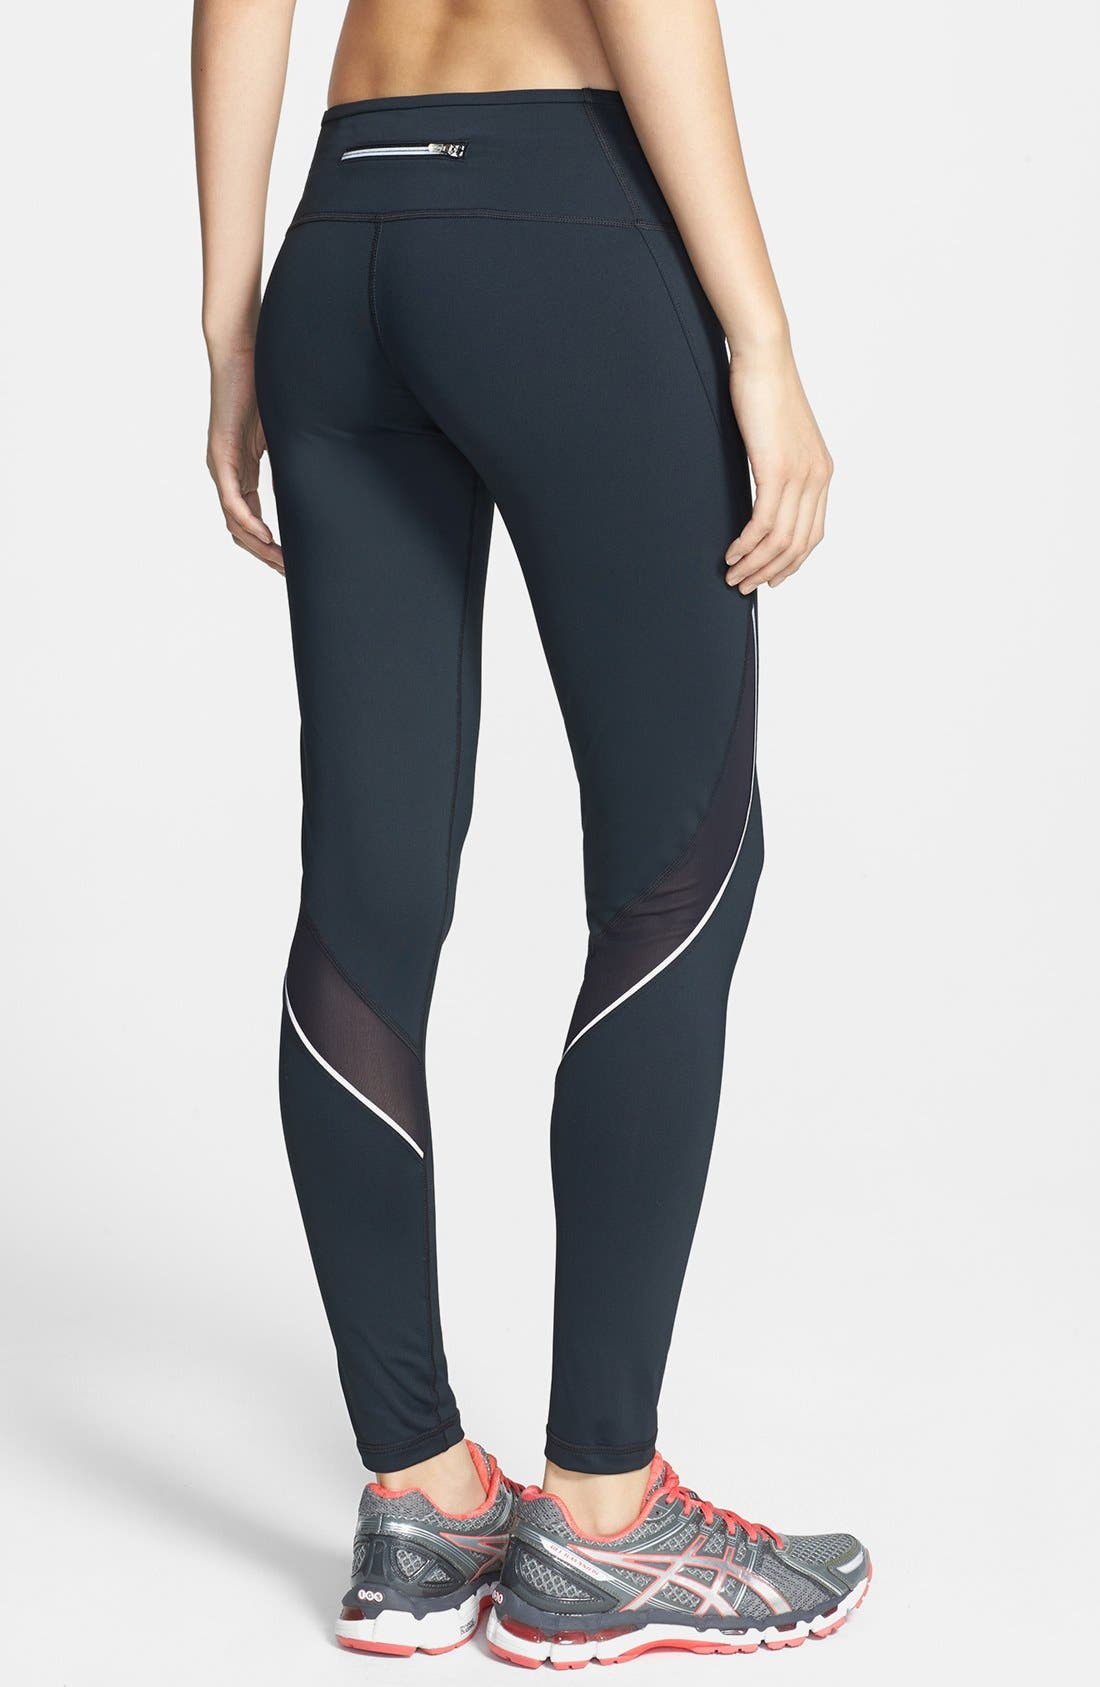 Main Image - Zella 'Perfect Run' Running Tights